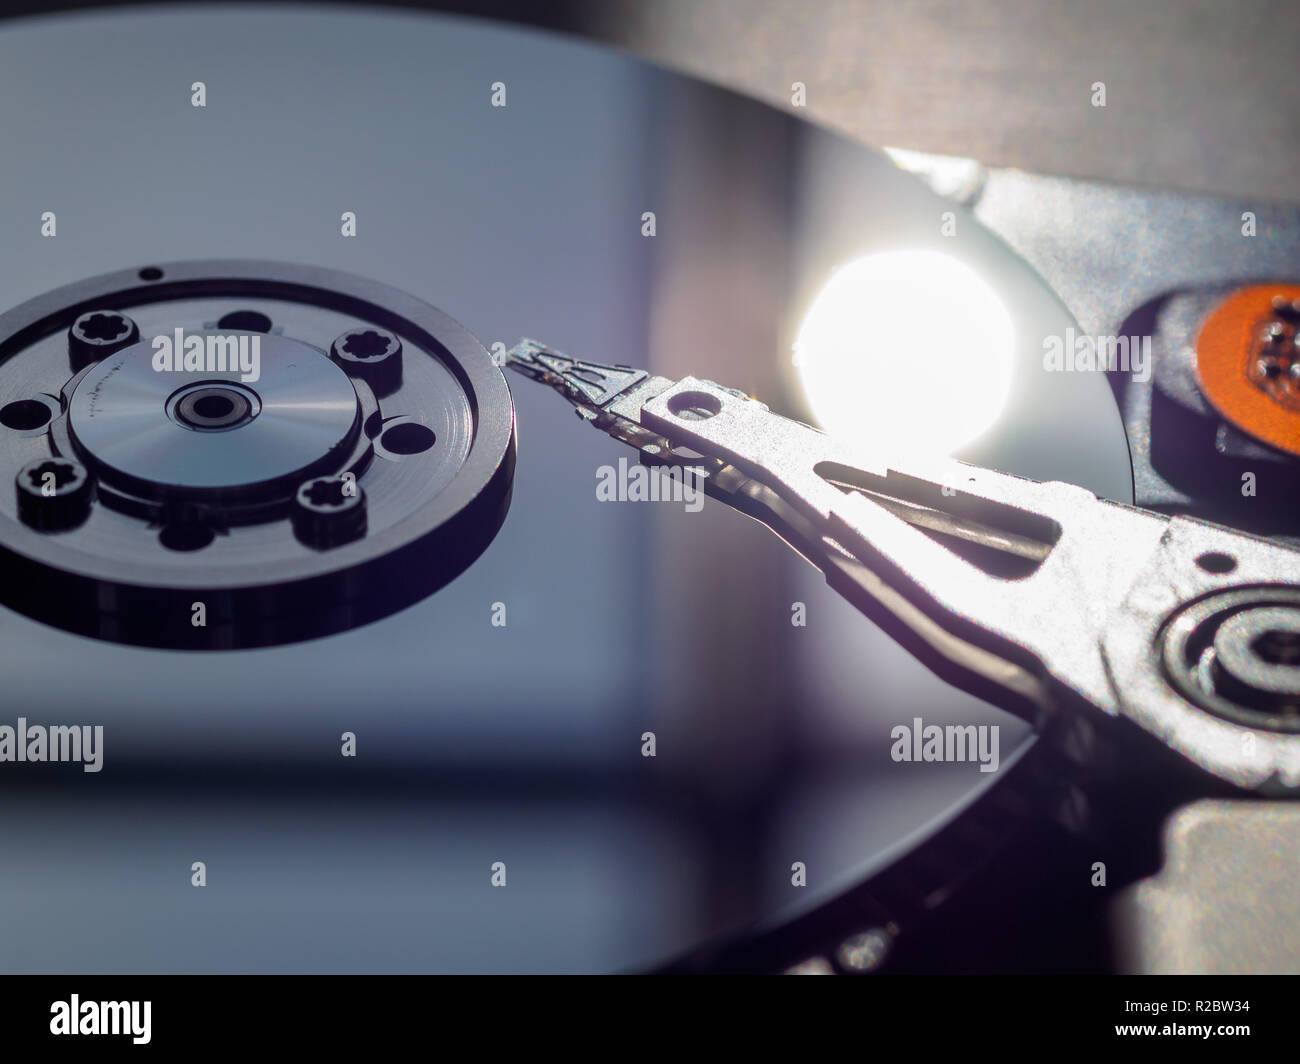 Open PC hard drive - Stock Image